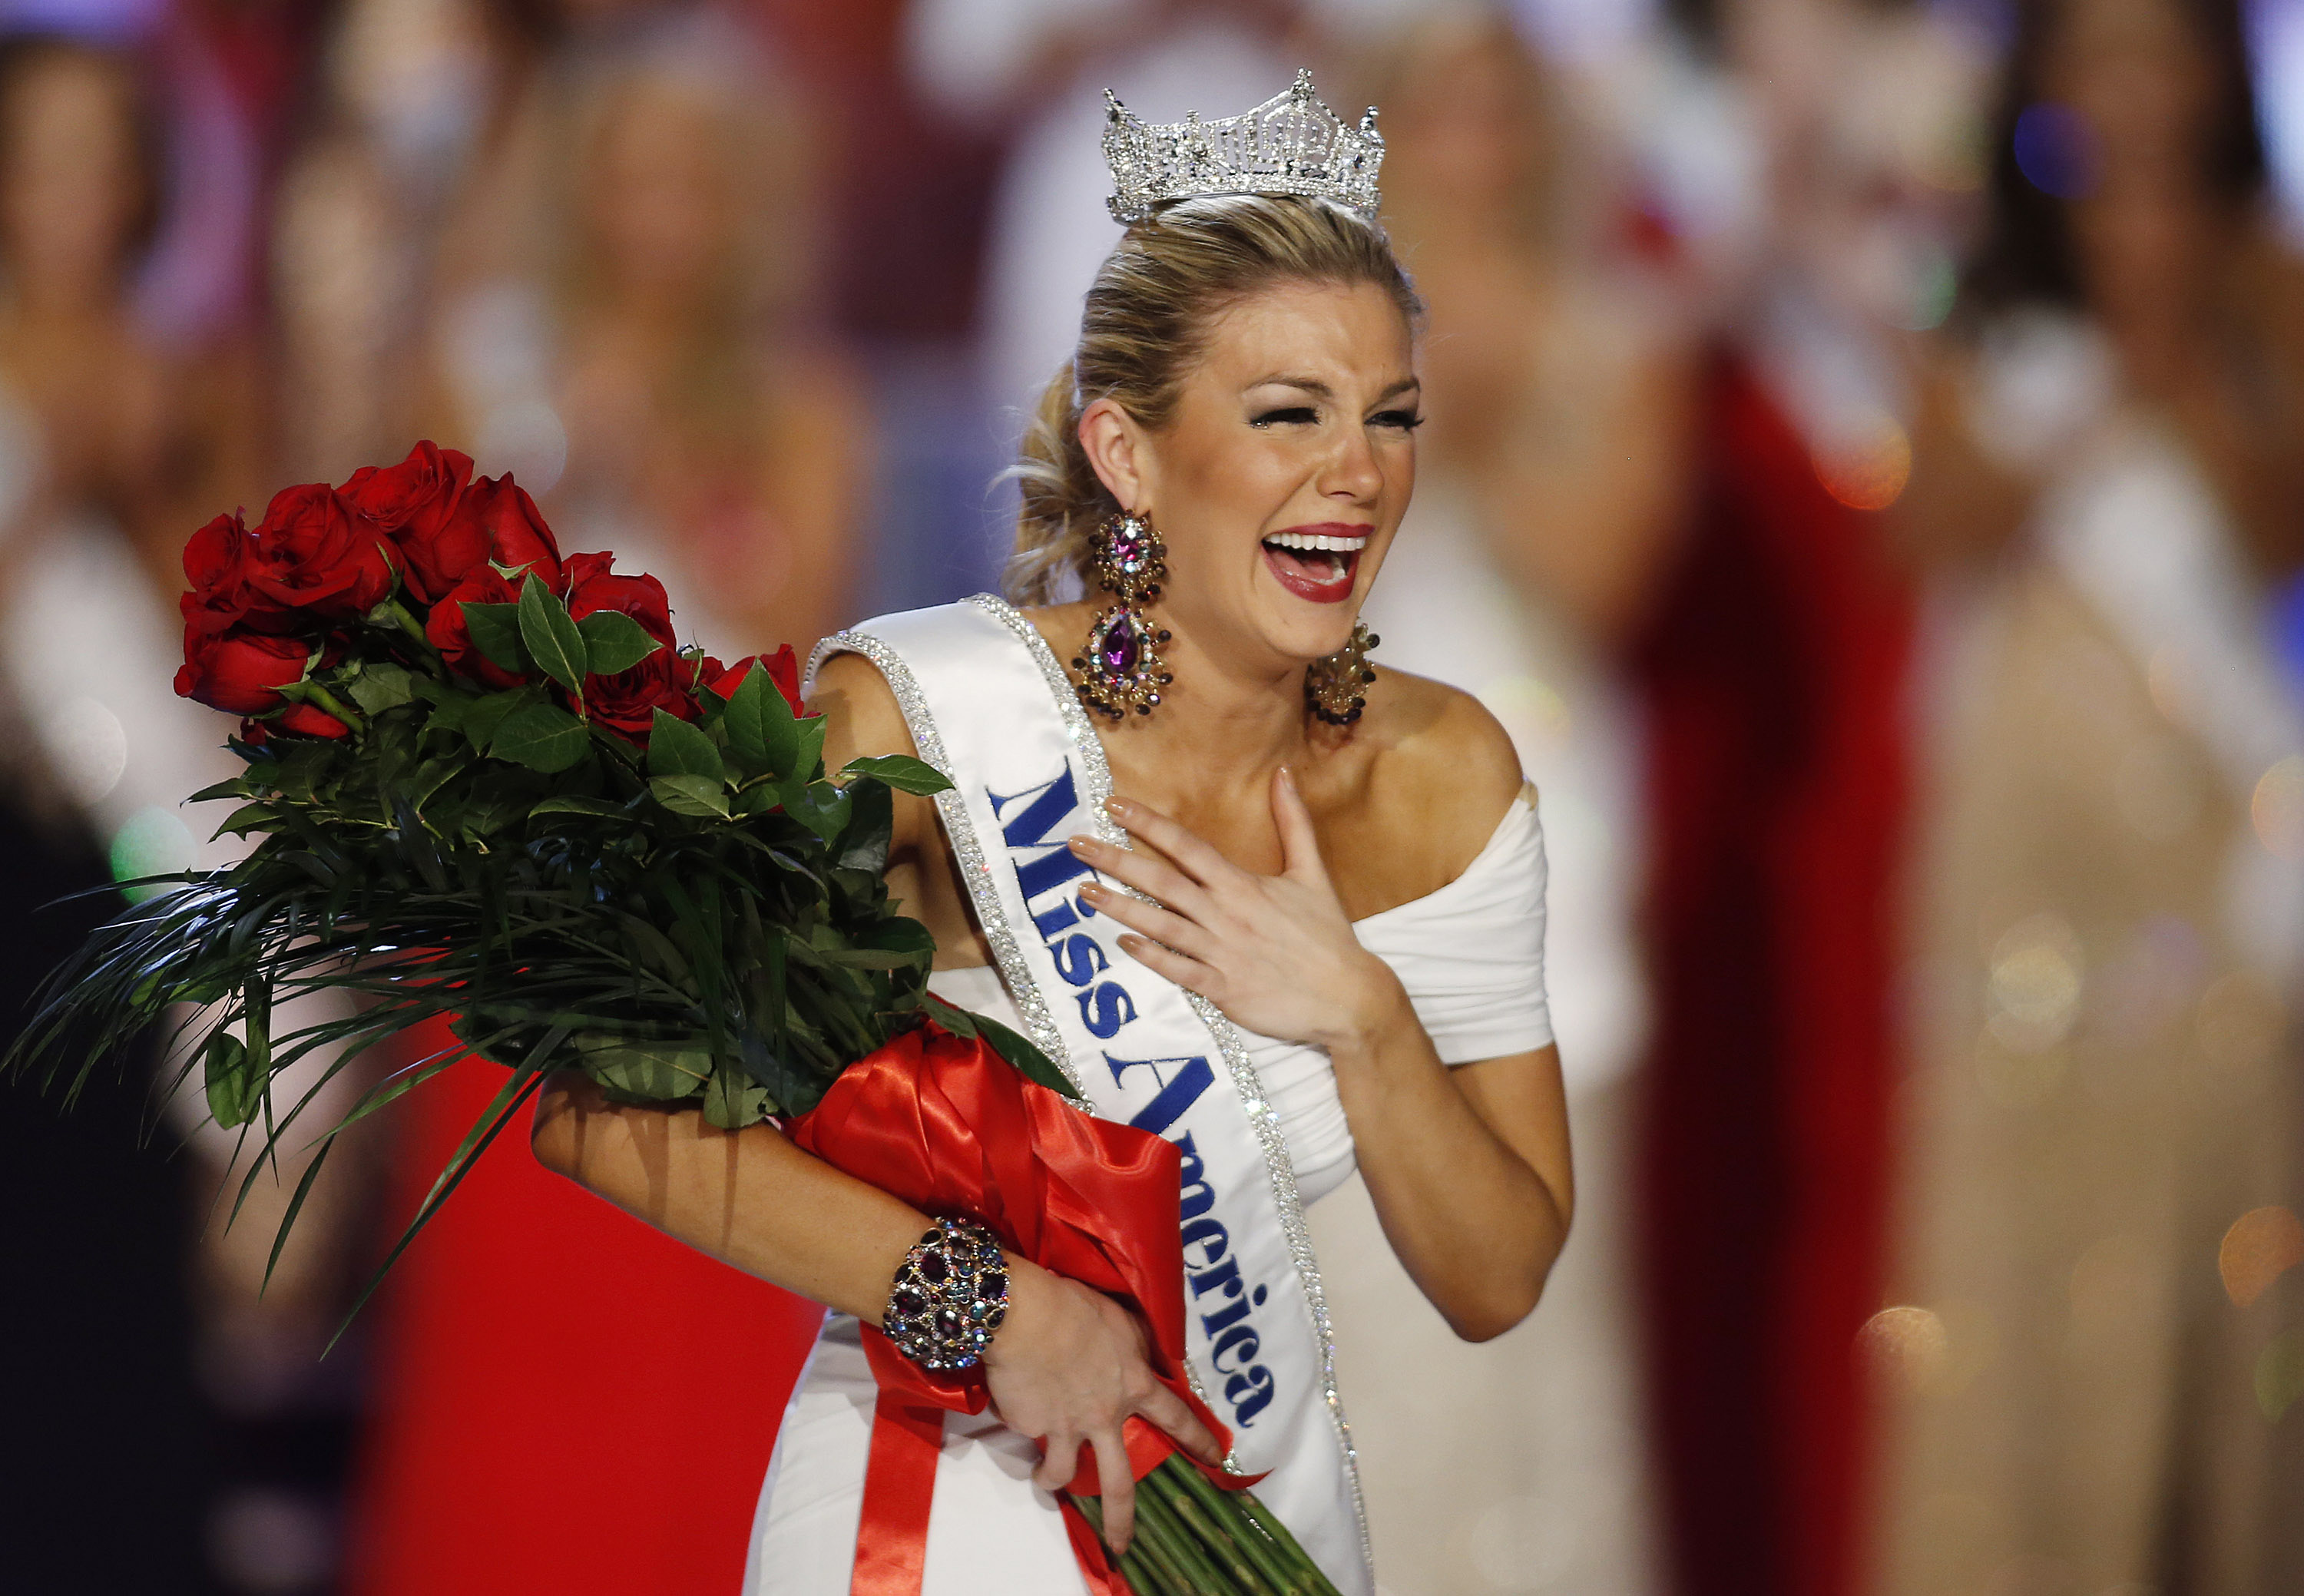 In this Jan. 12, 2013 file photo, Miss New York Mallory Hytes Hagan reacts as she is crowned Miss America 2013 in Las Vegas. Hagan was among former Miss Americas ridiculed in emails involving MAO CEO Sam Haskell, who stepped down on Saturday amid the latest scandal to rock the pageant.